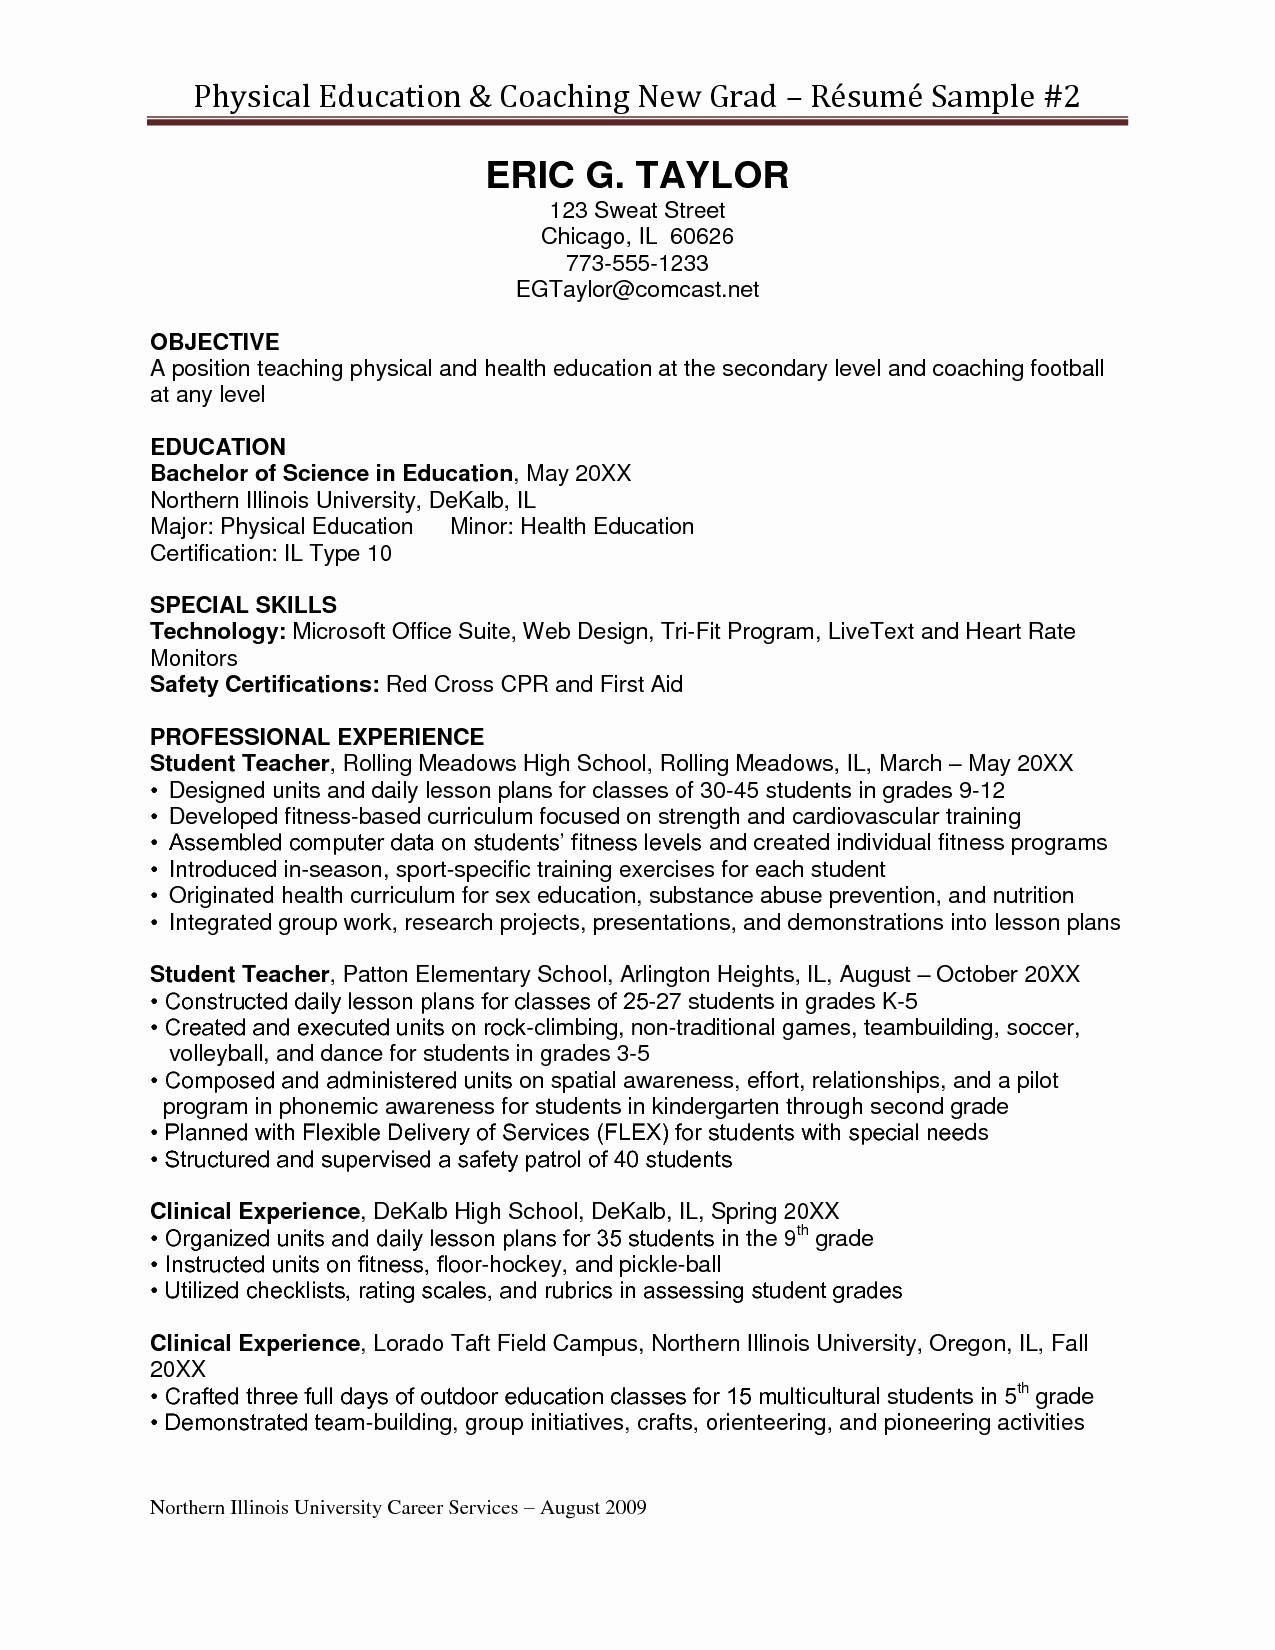 8 soccer player resume template ideas